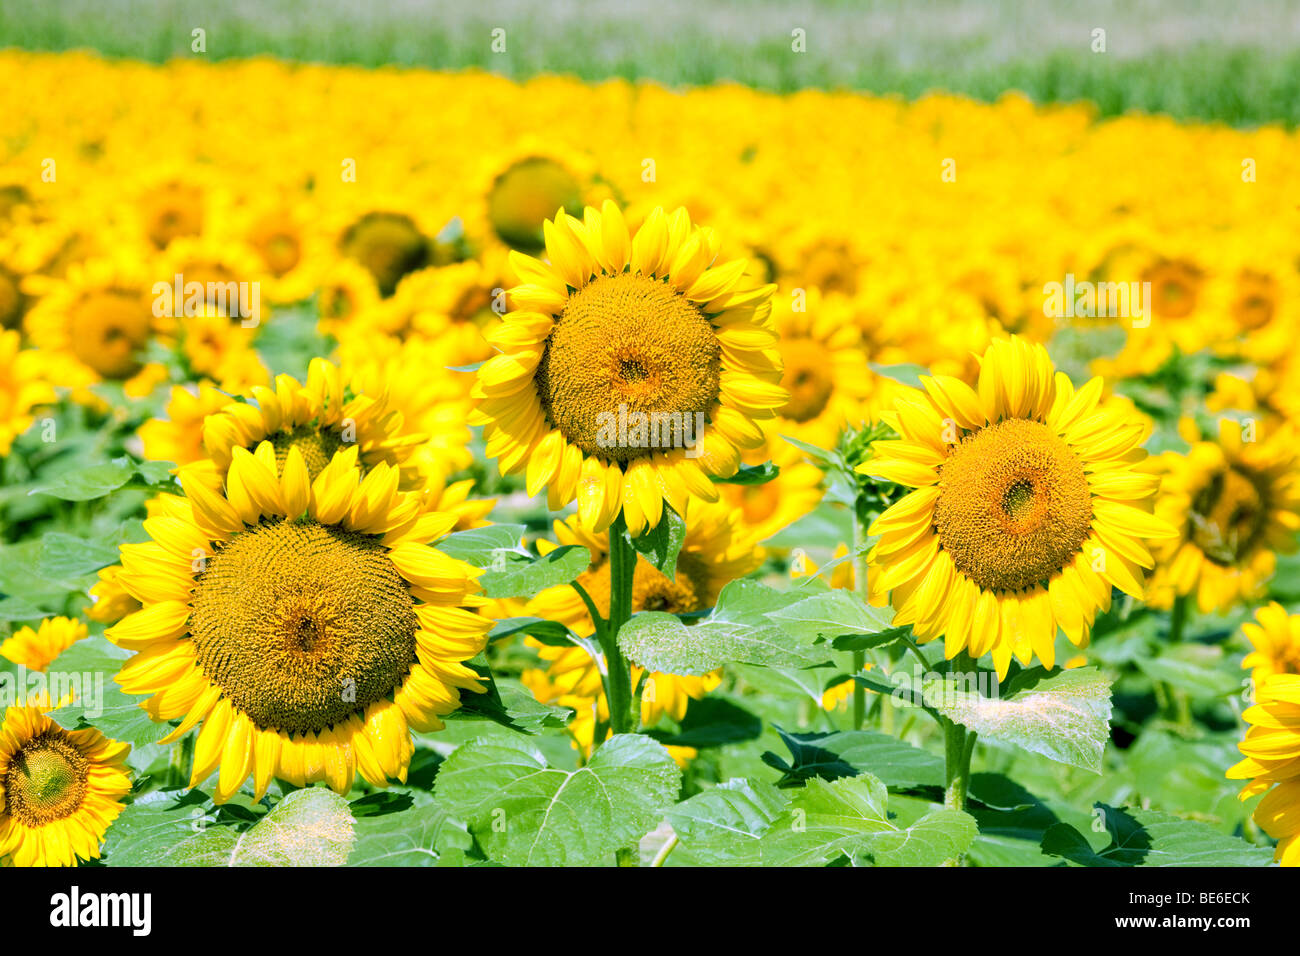 Sunflower field, Aquitaine, France - Stock Image